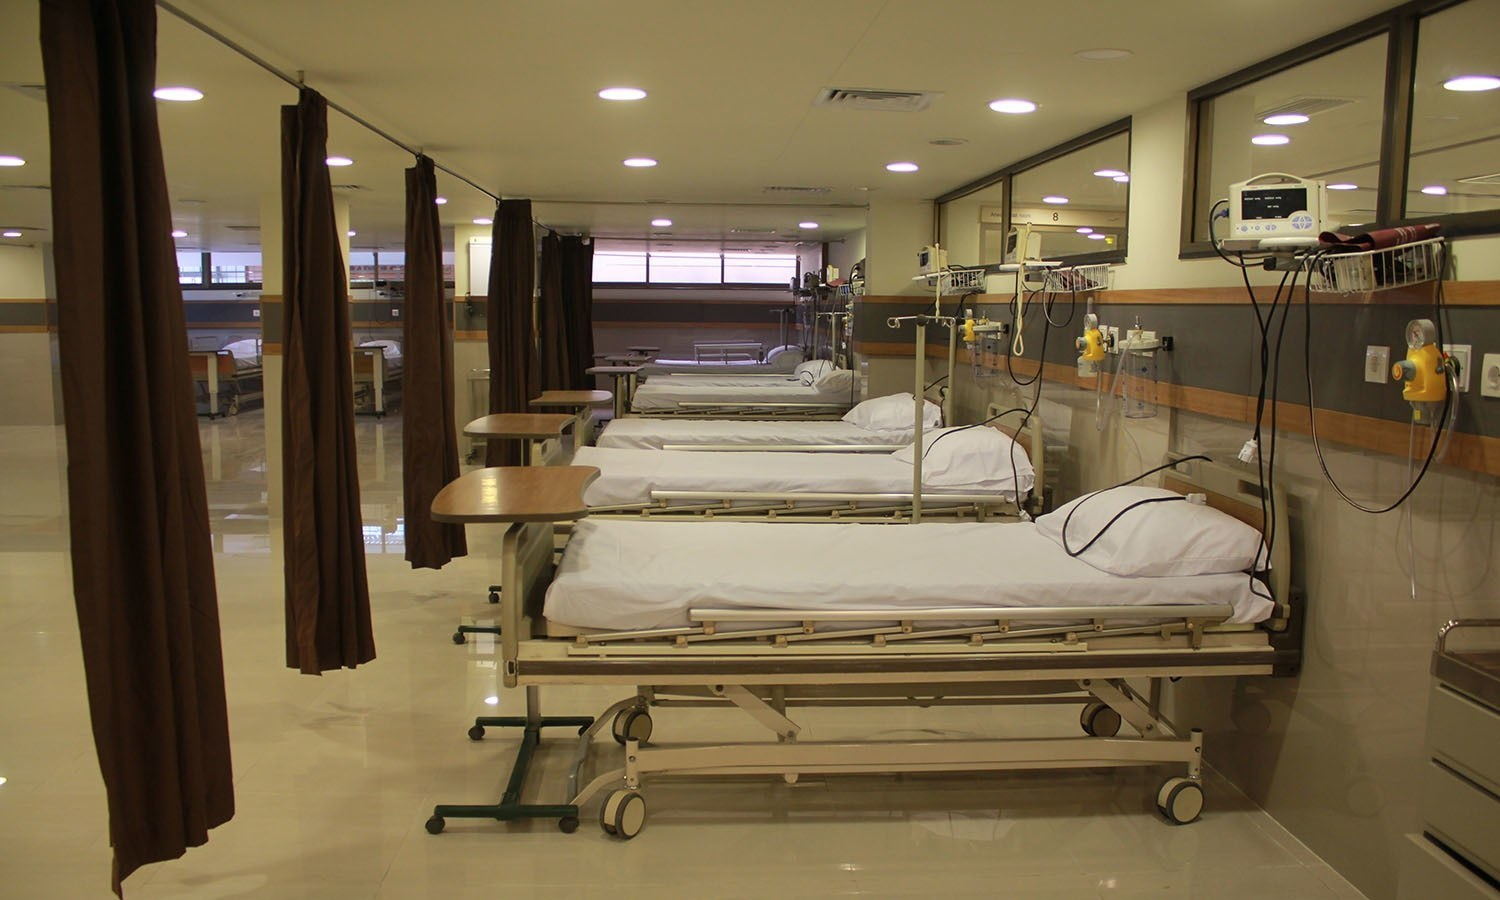 At present, the Sindh government has 503 ICU beds with ventilators and 1,810 HDU beds. — Dawn/File